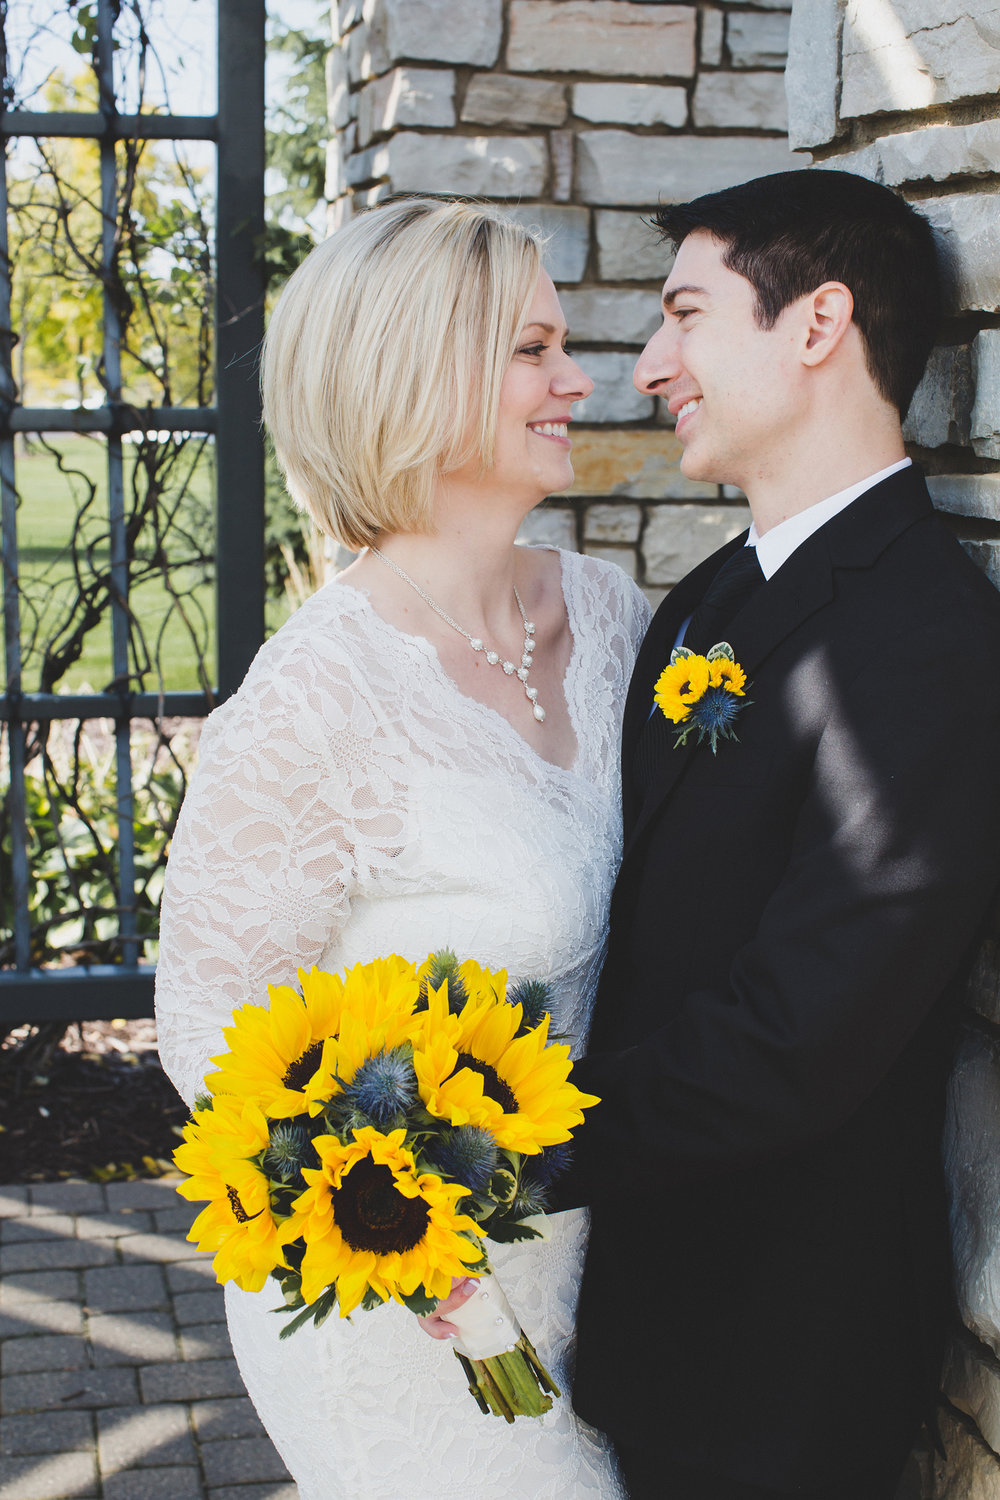 Minneapolis Courthouse Elopement_Sarah and Chris_Travel Photographer_Minneapolis Wedding_Hennepin County Courthouse Wedding_Washington Photographer_Destination Photographer_Wedding Day_Courthouse Wedding_Bride and Groom_Yellow Flowers_Tri Cities Washington Wedding Photographer_19